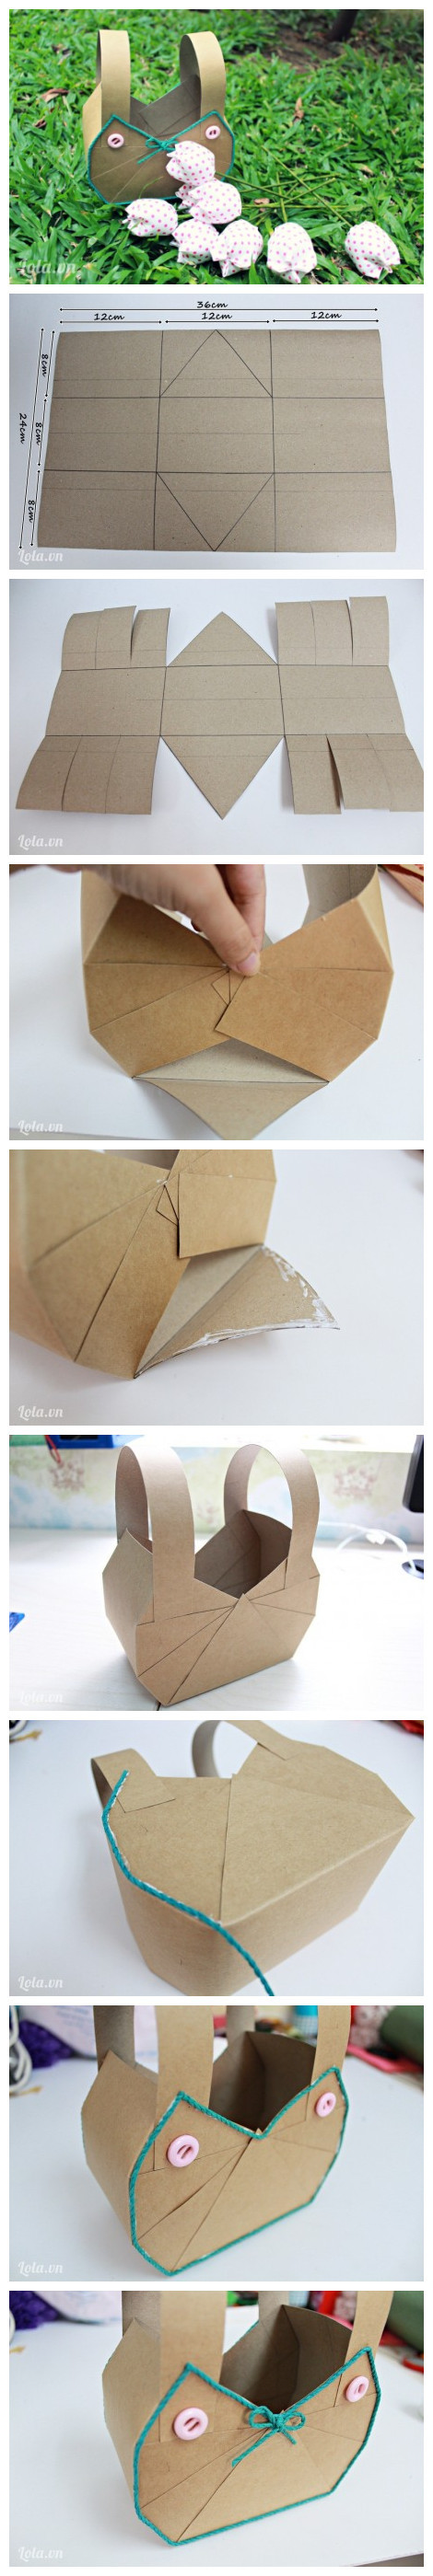 Easy Way To Make Paper Basket